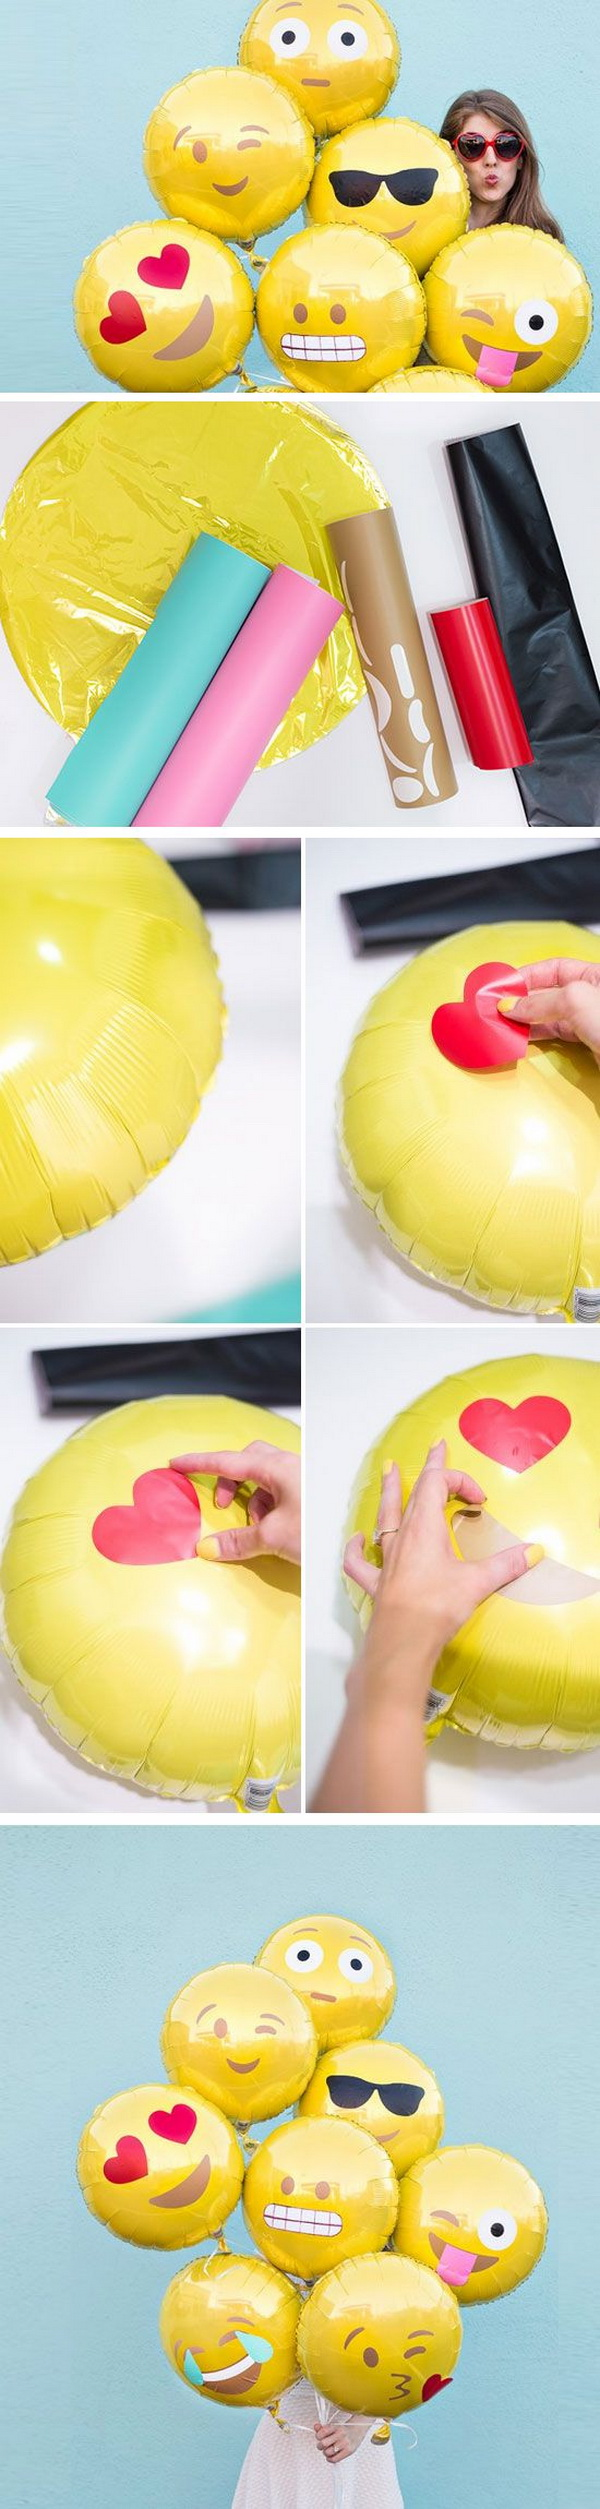 50+ Pretty Balloon Decoration Ideas - For Creative Juice